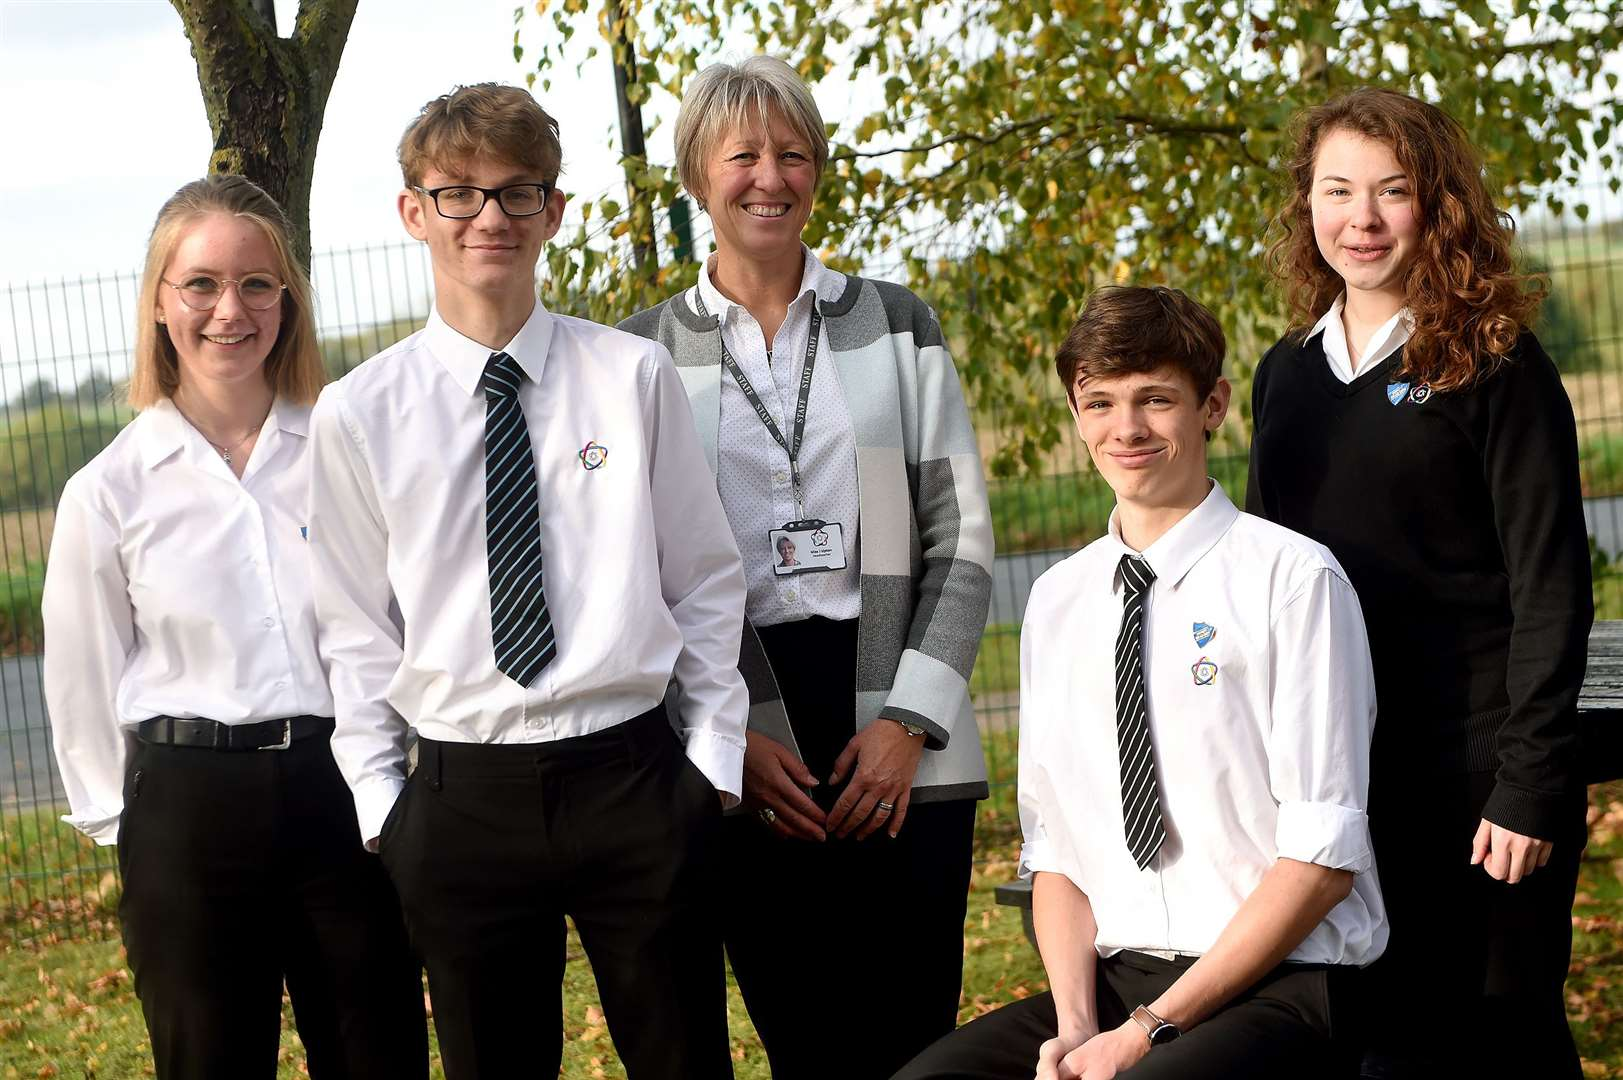 Debenham High School has come out on top in Progress 8 scores in Suffolk. Pictured are Millie Clark, Alfred Scott, headteacher Julia Upton, Frazer McMyn and Maisy Ward-Jackson. Picture by Mecha Morton.